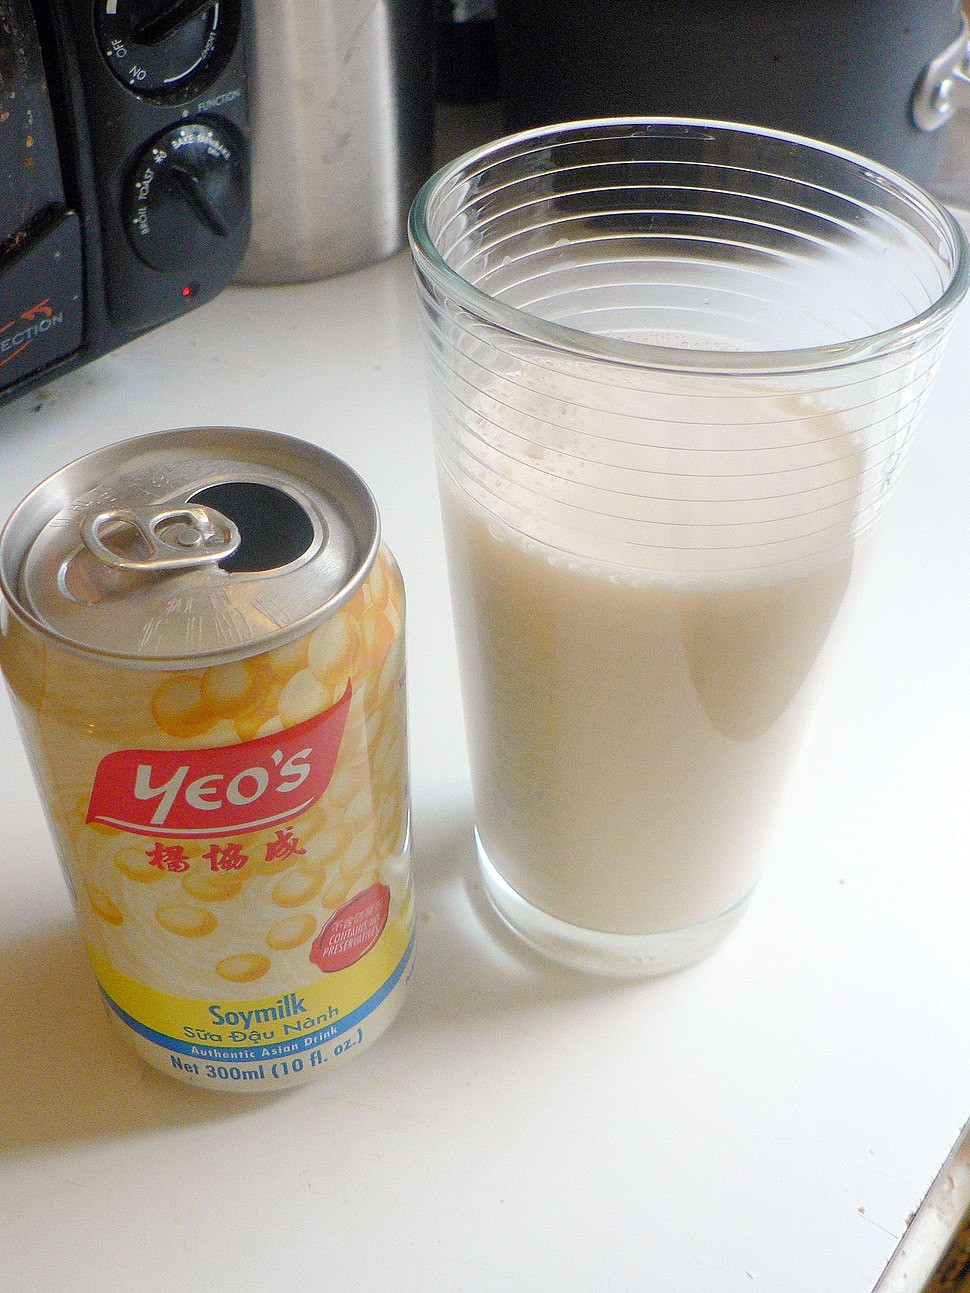 Soymilk can and glass 2